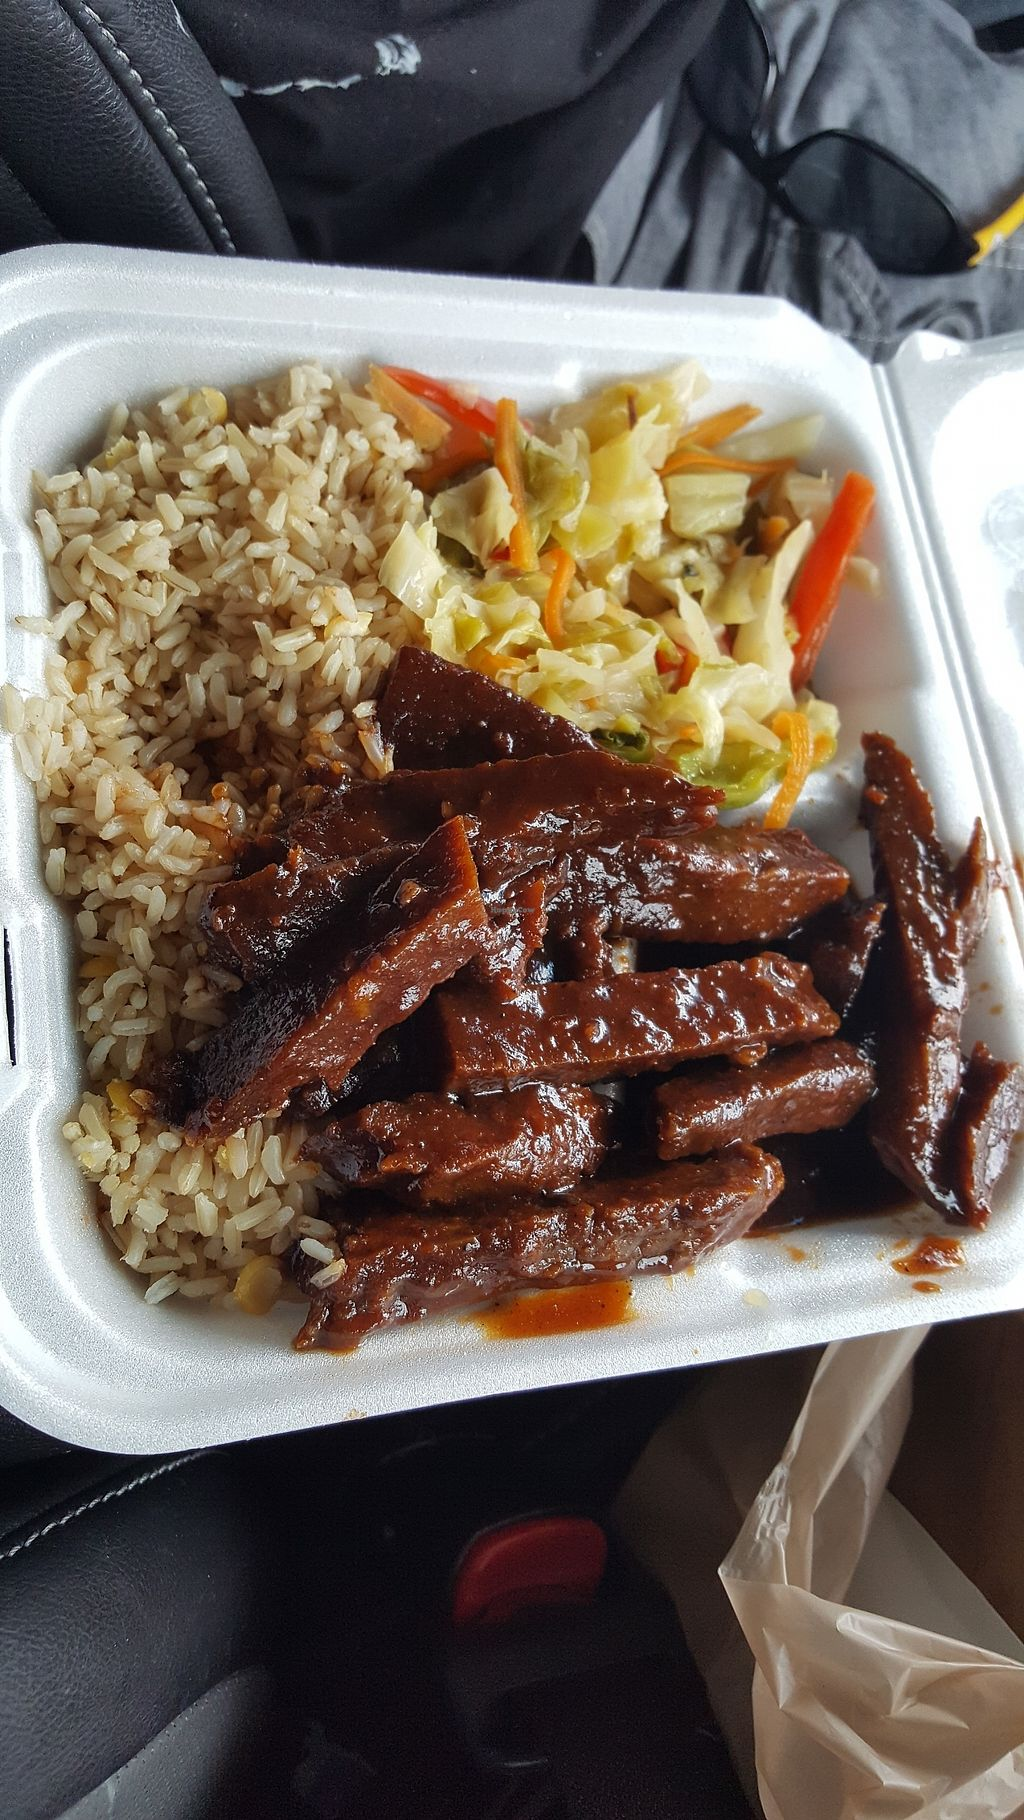 """Photo of Vegetarian Delight  by <a href=""""/members/profile/Tnj0507"""">Tnj0507</a> <br/>barbecue <br/> July 29, 2017  - <a href='/contact/abuse/image/23966/286417'>Report</a>"""